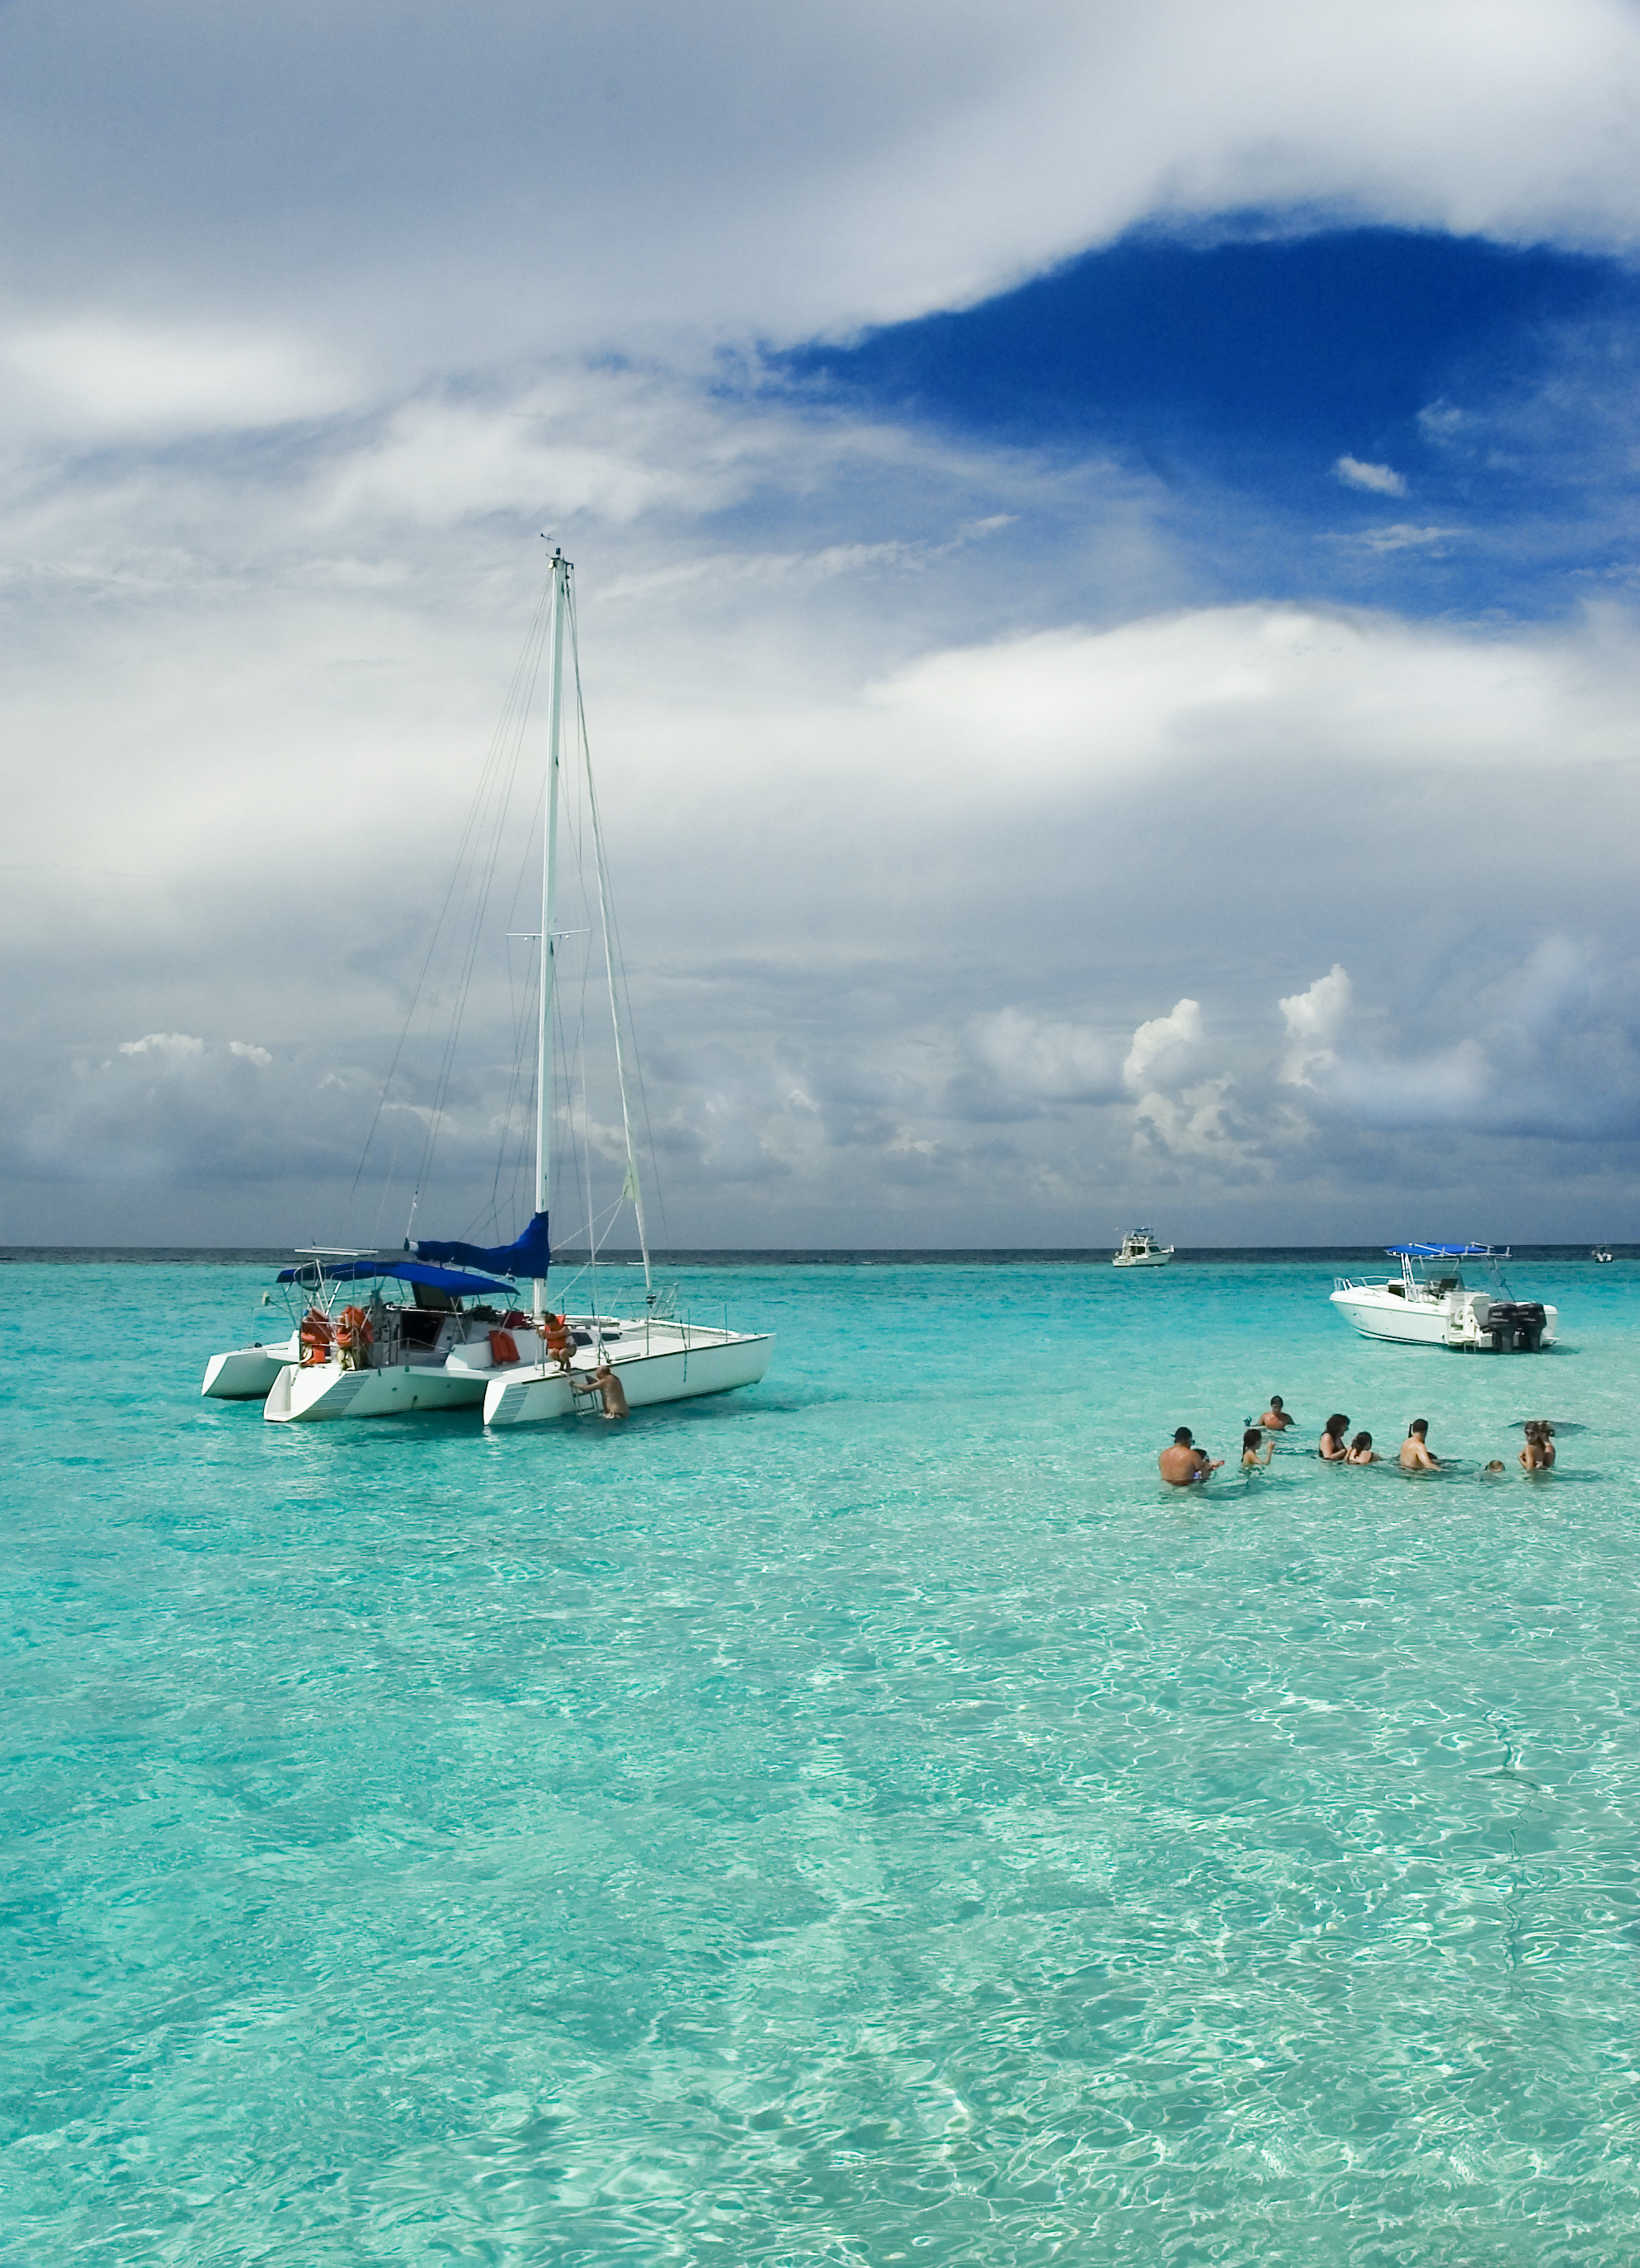 City Mexico Trip Ideas Tulum sky water Boat outdoor Sea coastal and oceanic landforms body of water Ocean cloud caribbean azure shore tropics vacation Island Lagoon wave Beach Coast bay horizon calm wind wave tourism inlet tree blue day